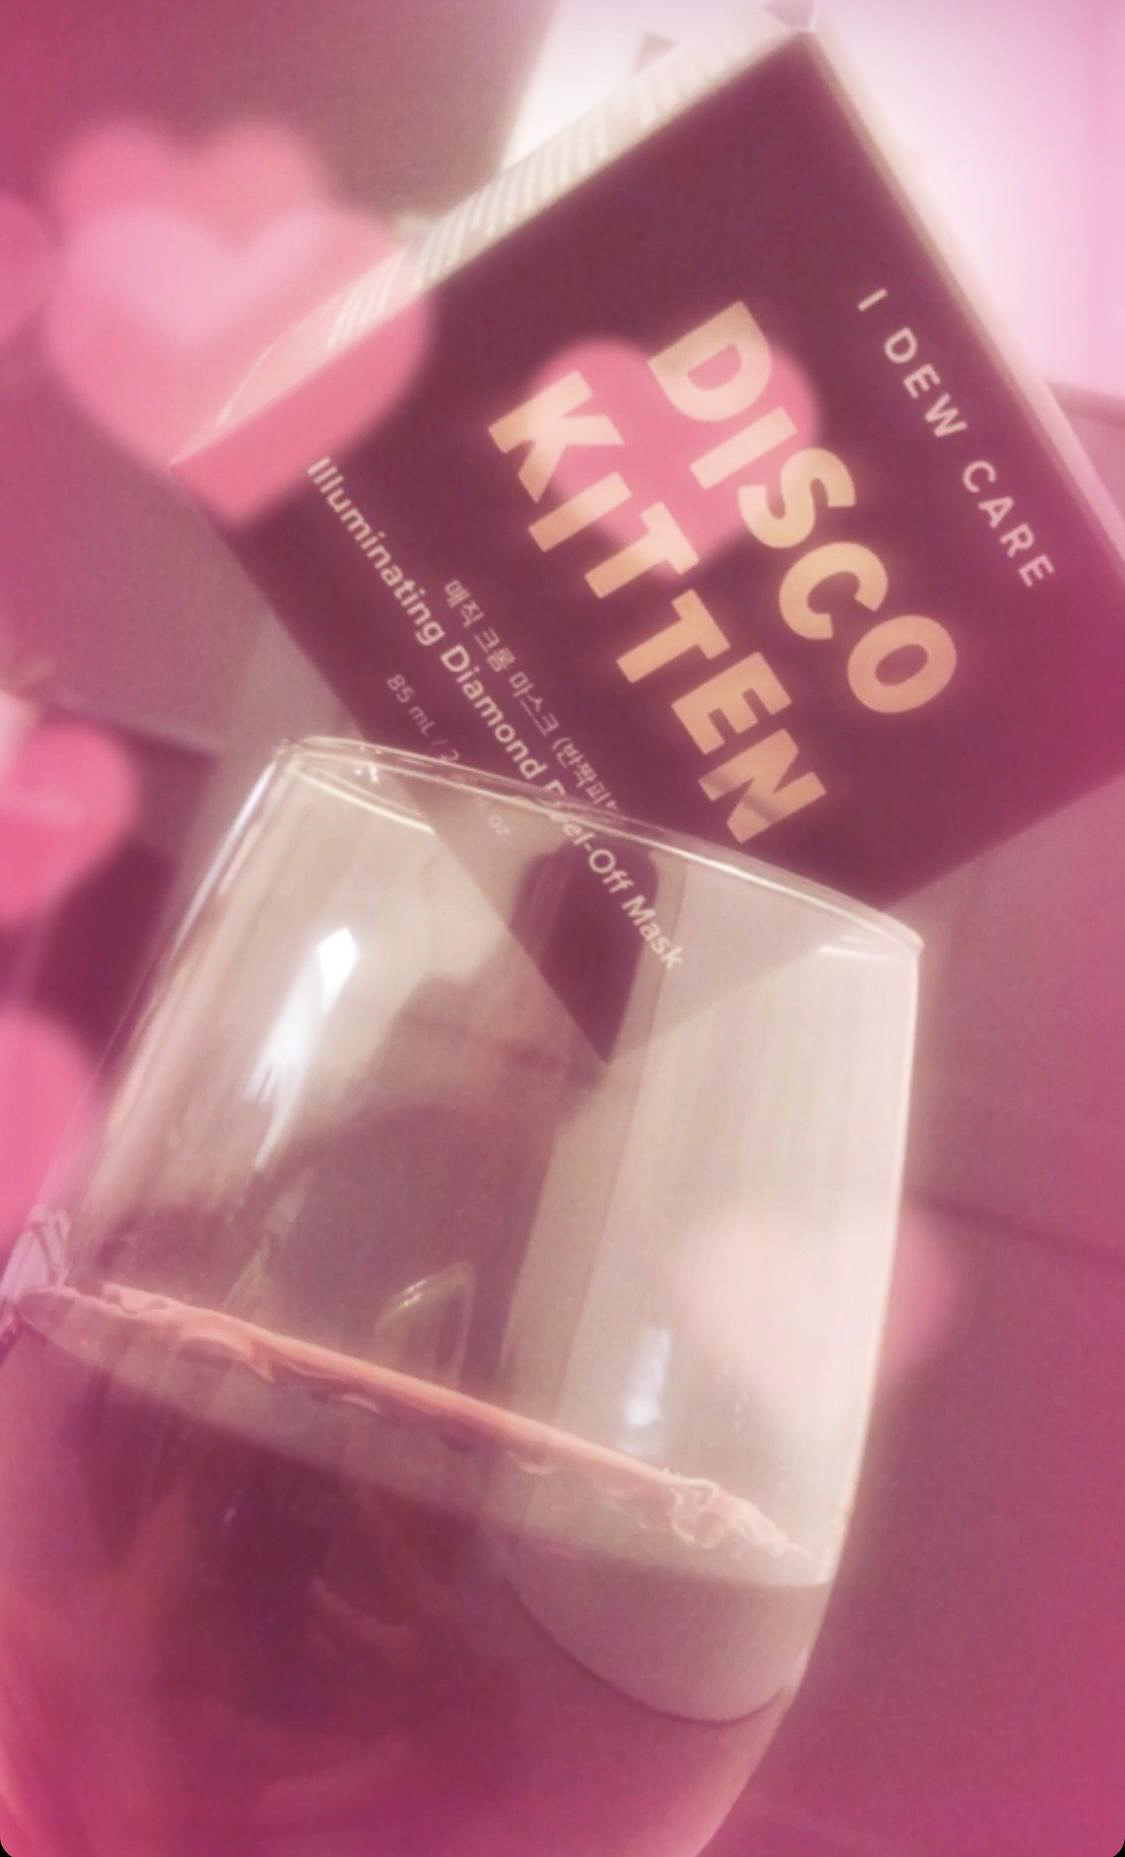 Ipsy|I Dew Care Disco Kitten Peel-Off Mask Review